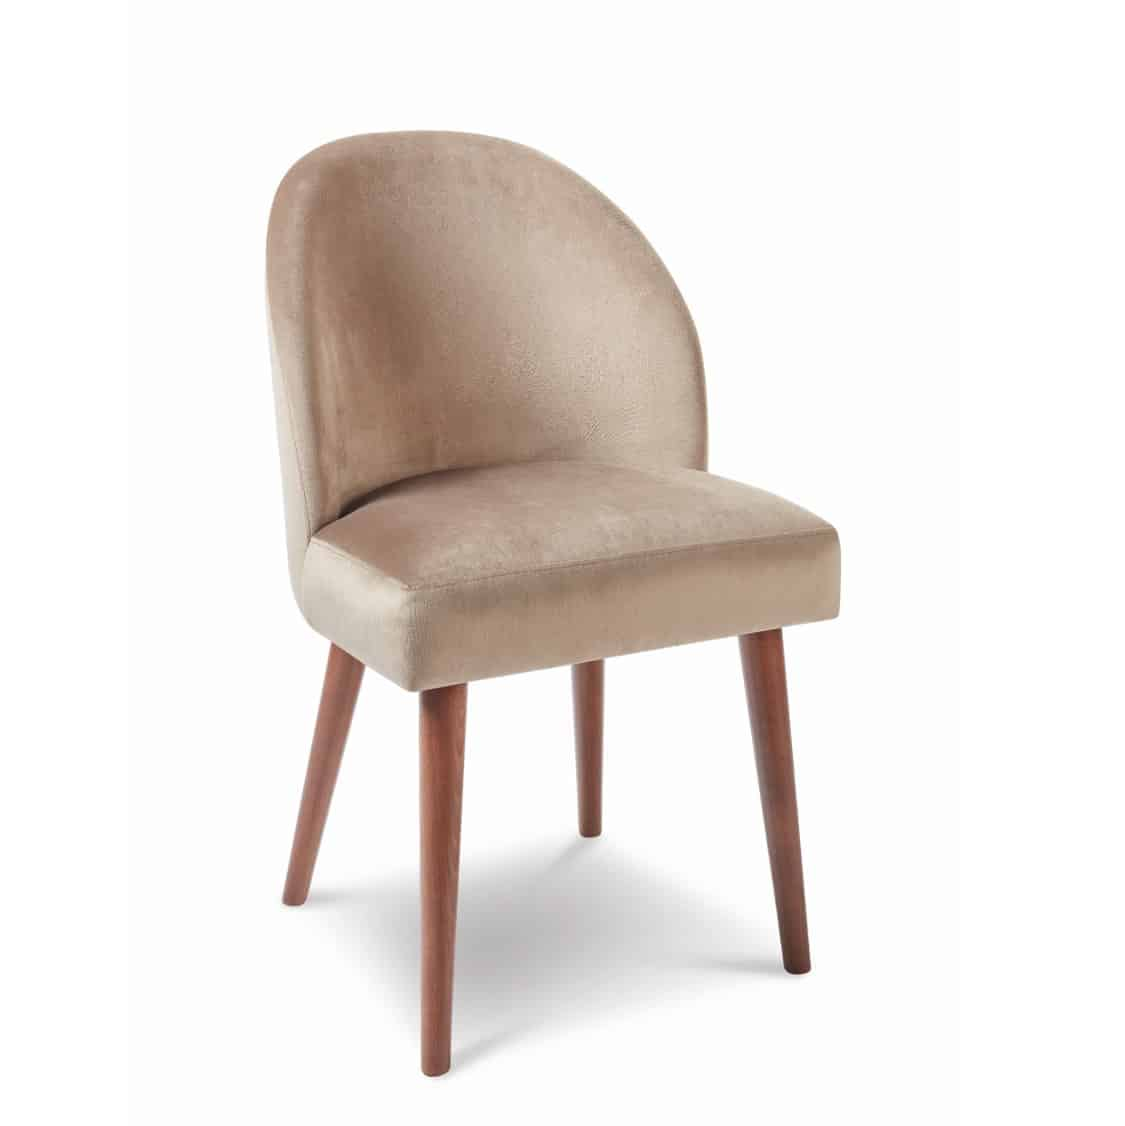 Rush side chair with round legs at DeFrae Contract Furniture